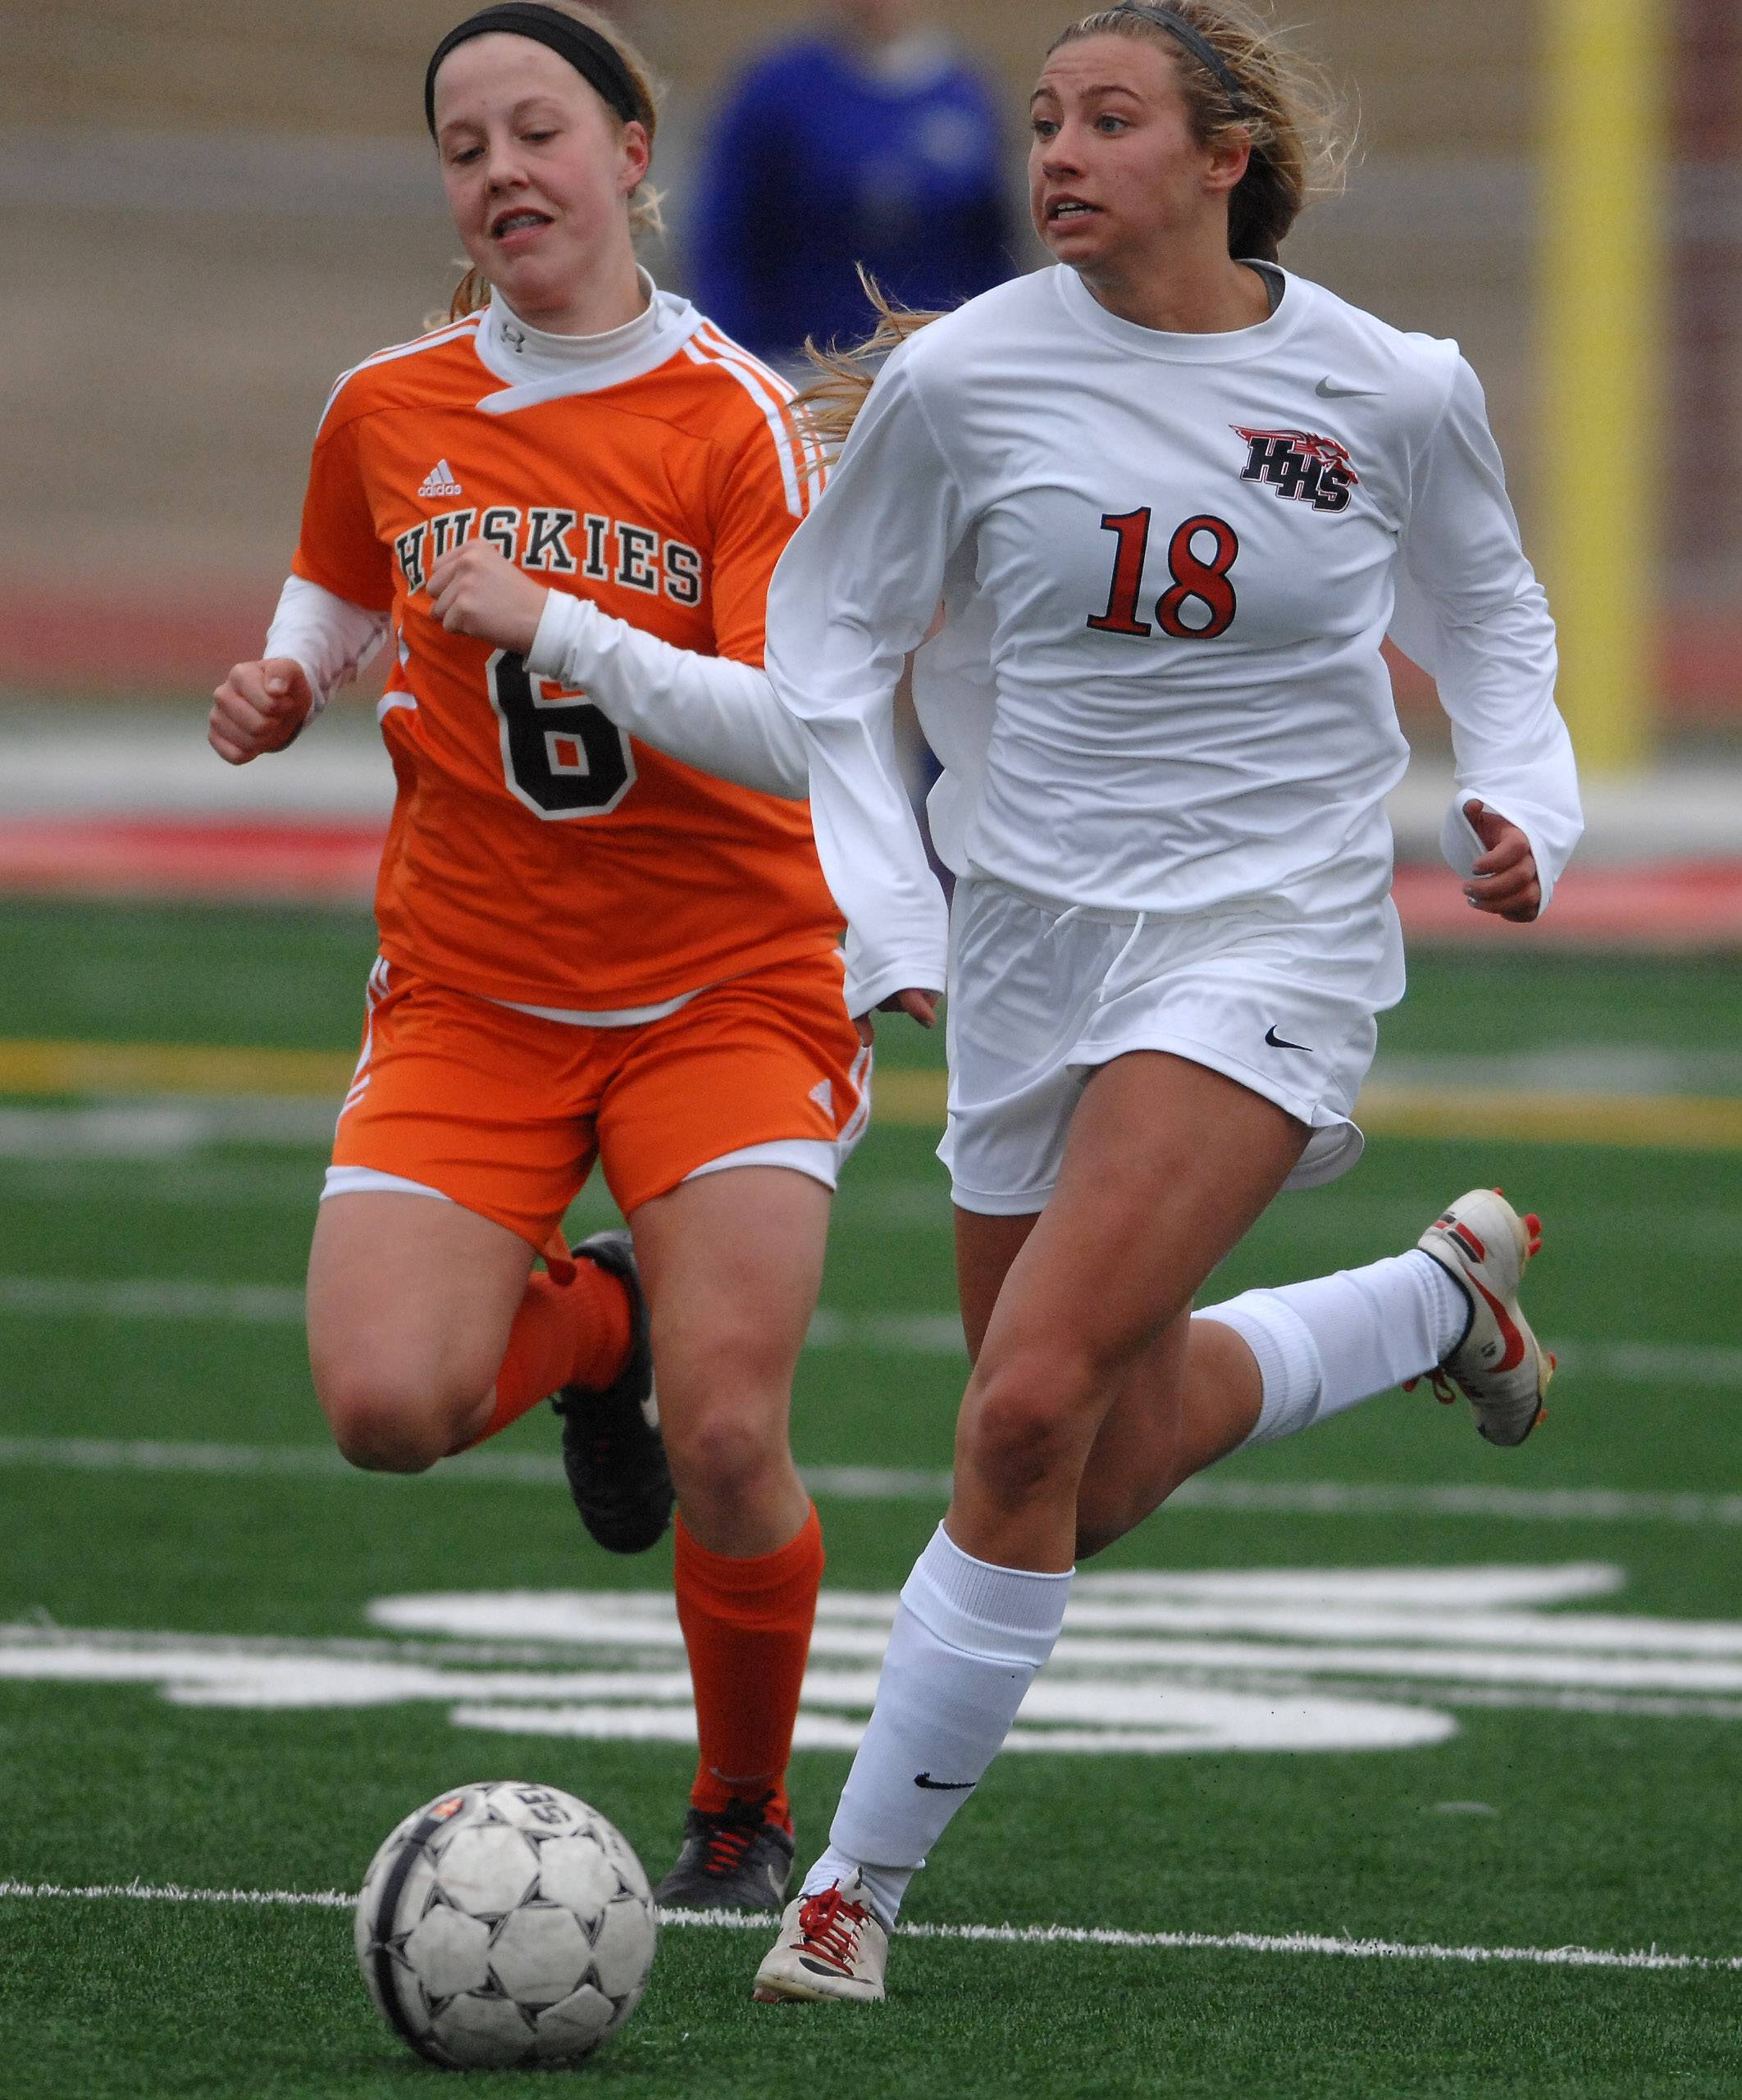 Huntley's Beth Parks races down field with Hersey's Sara Magnuson giving chase during Friday's game in Huntley.